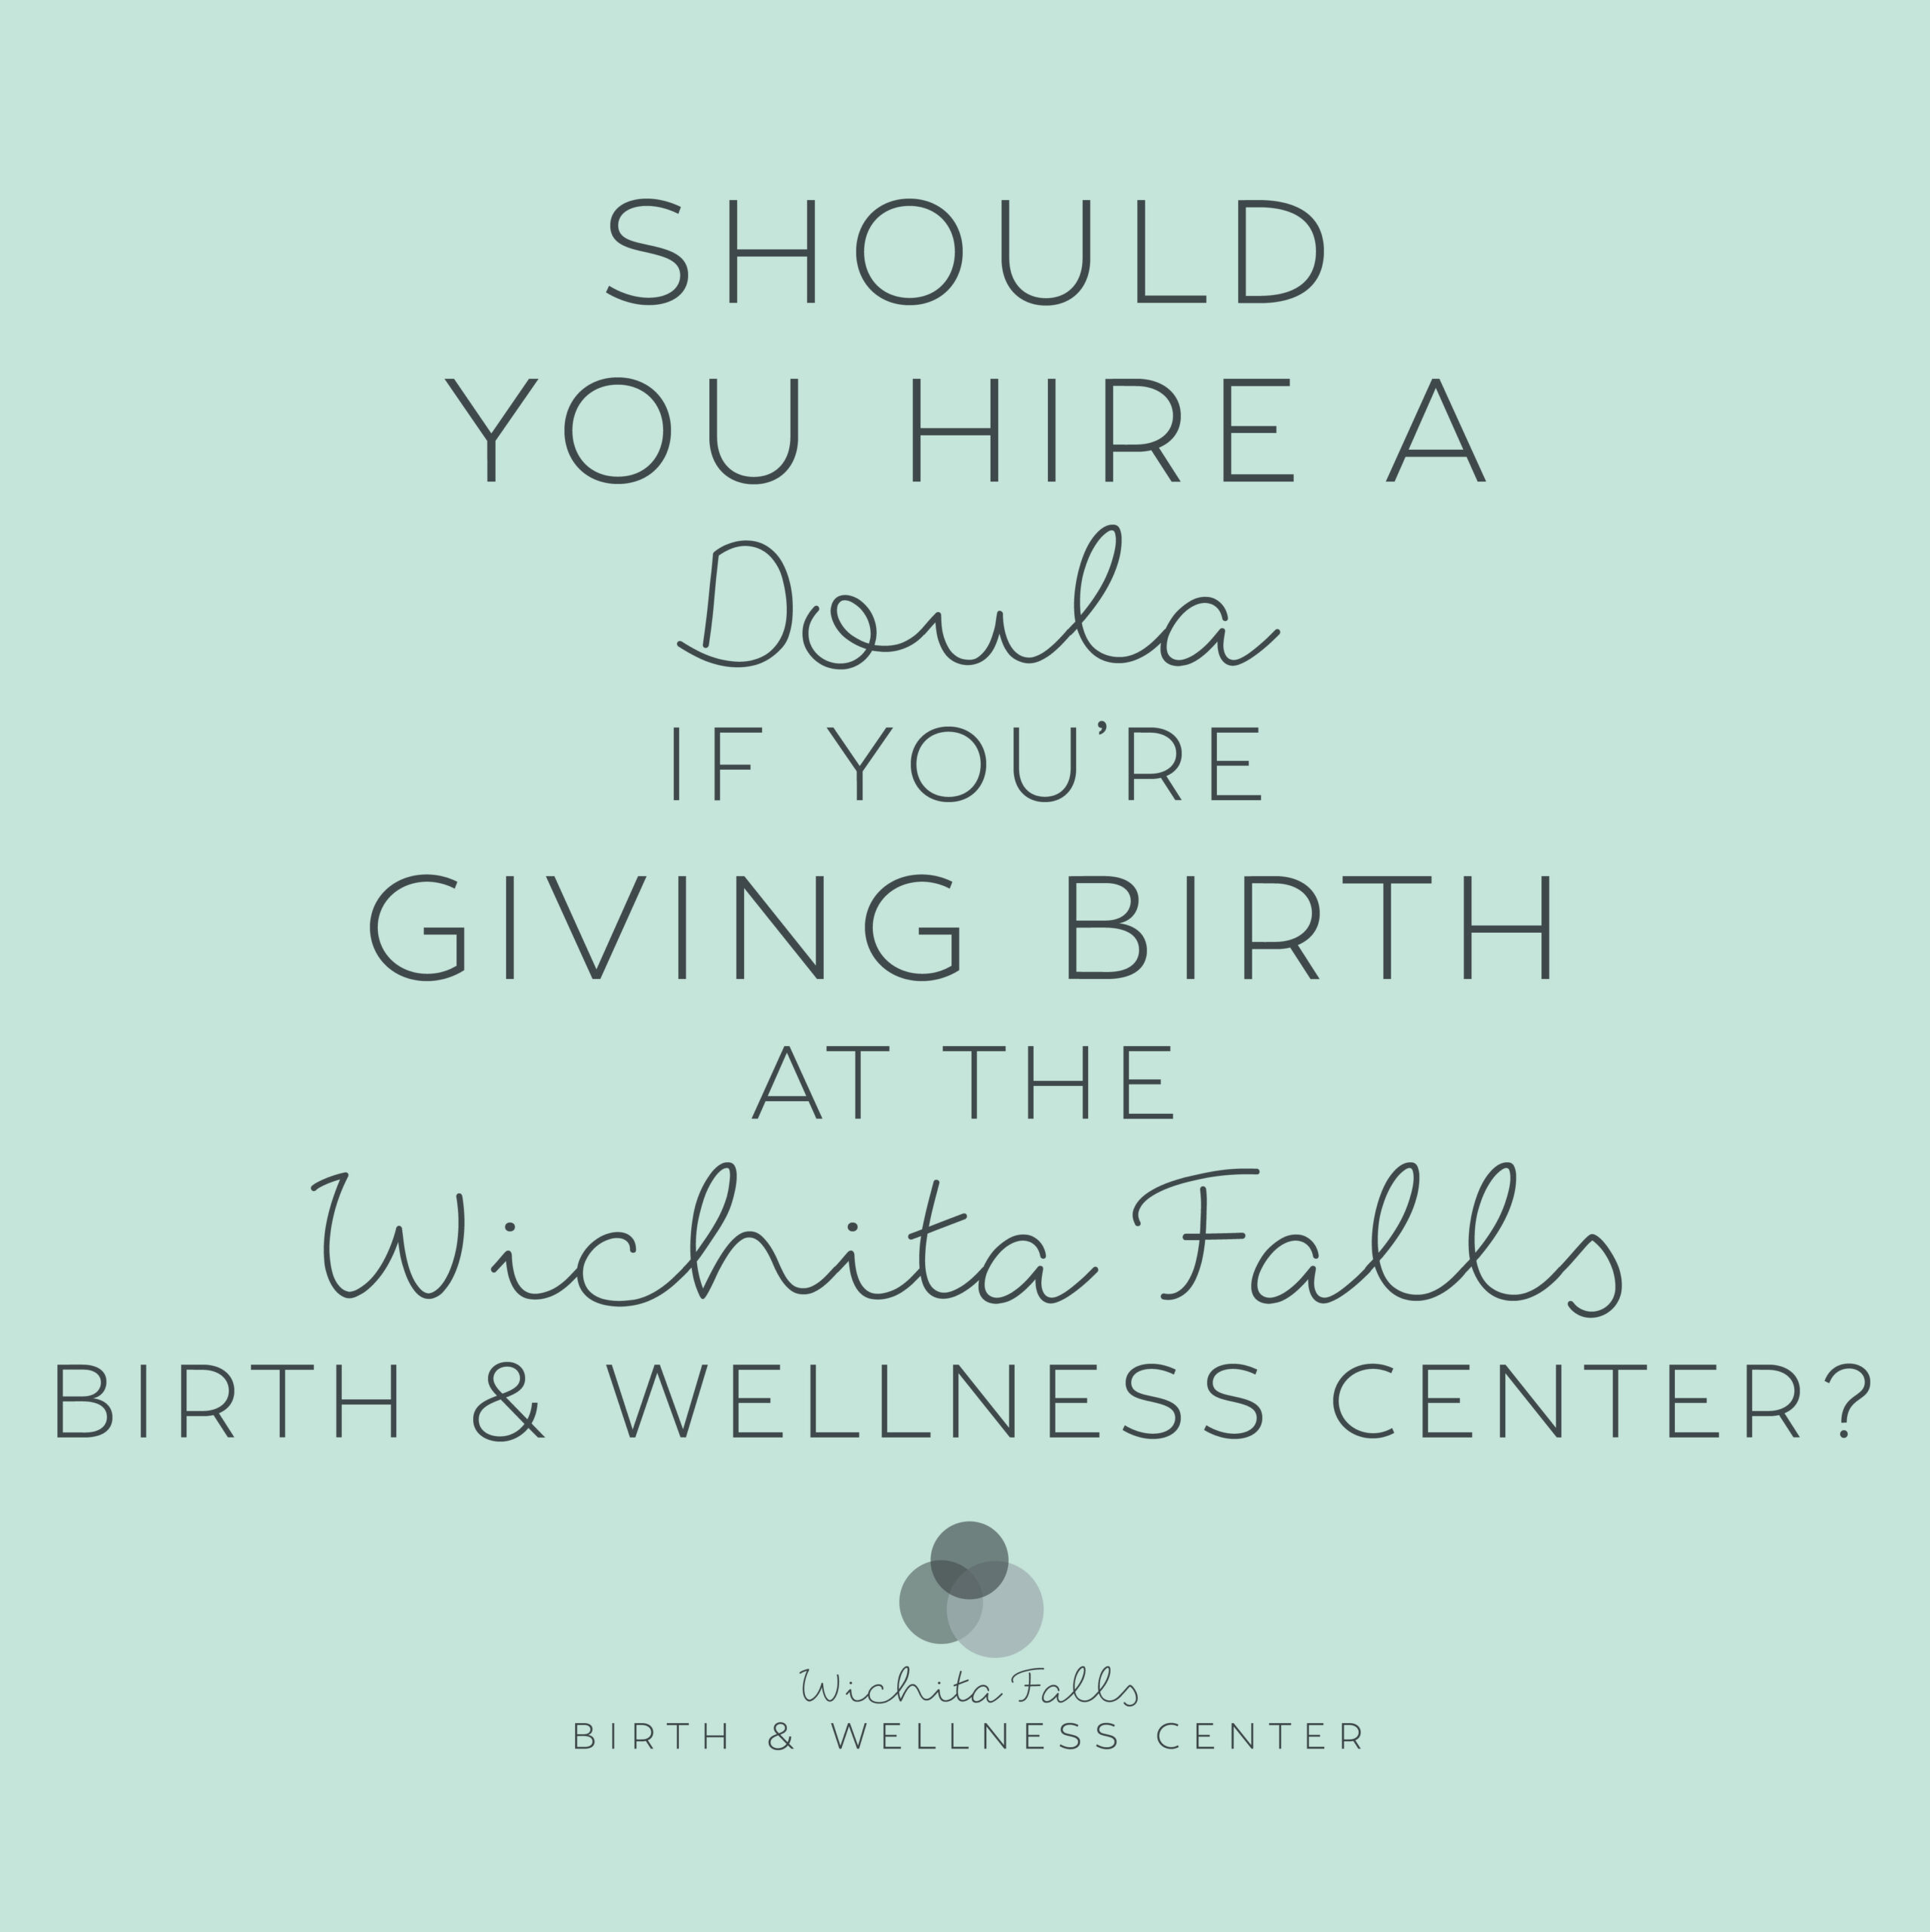 Should You Hire a Doula if You're Giving Birth at the Wichita Falls Birth & Wellness Center?